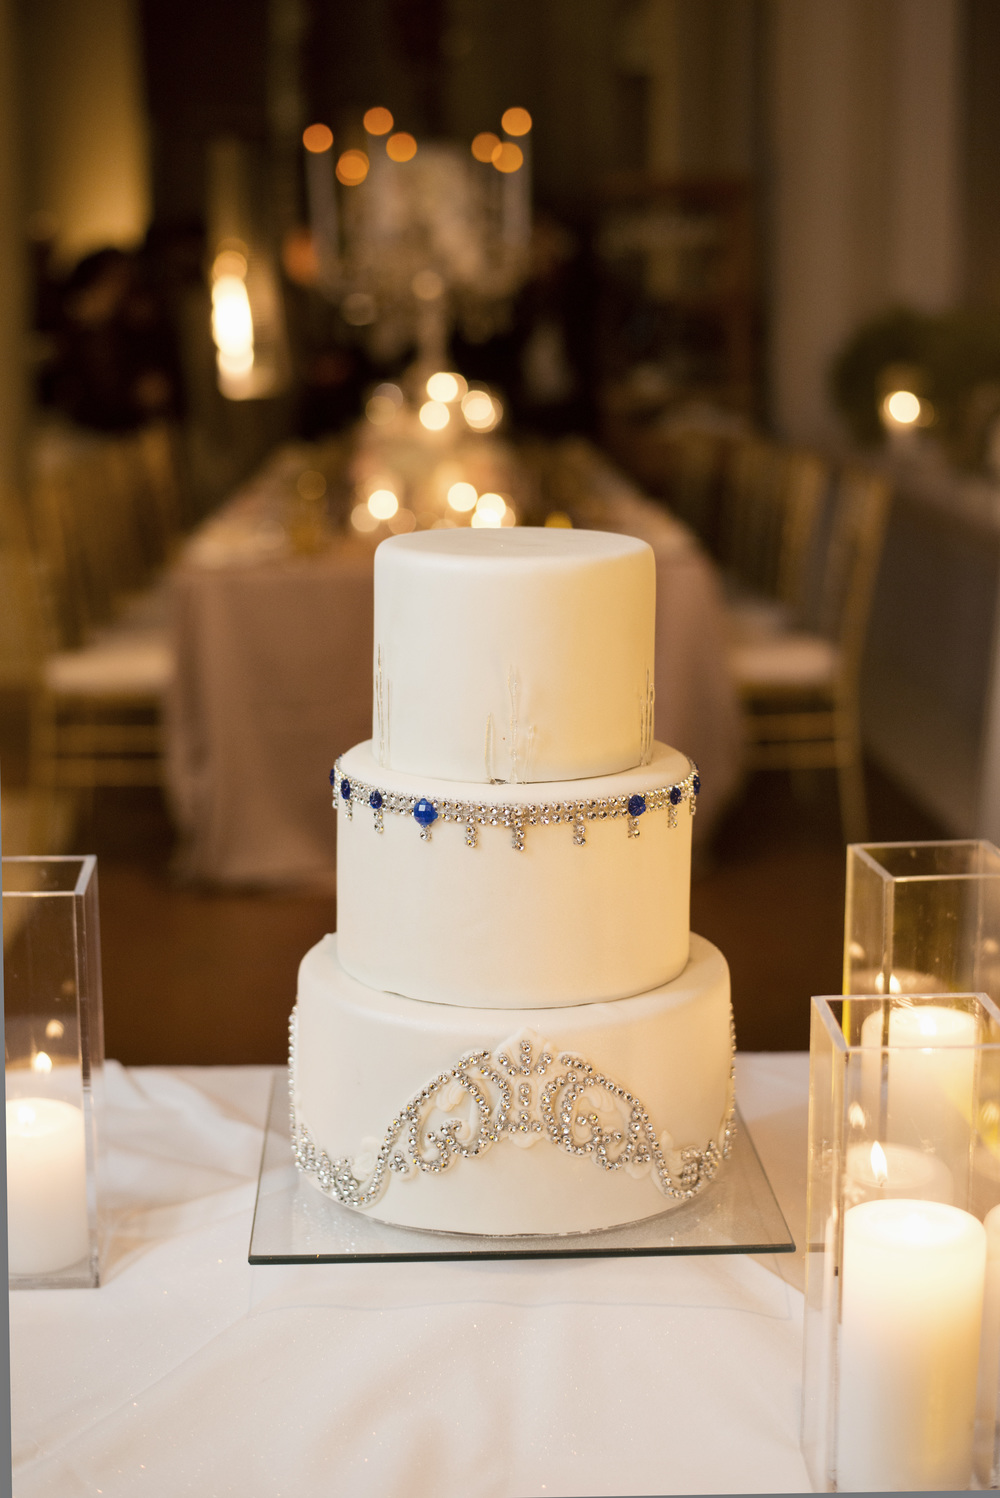 Three Tiered Wedding Cake with White Fondant and Crystal Accents - An Intimate Wedding at Four Seasons Las Vegas.